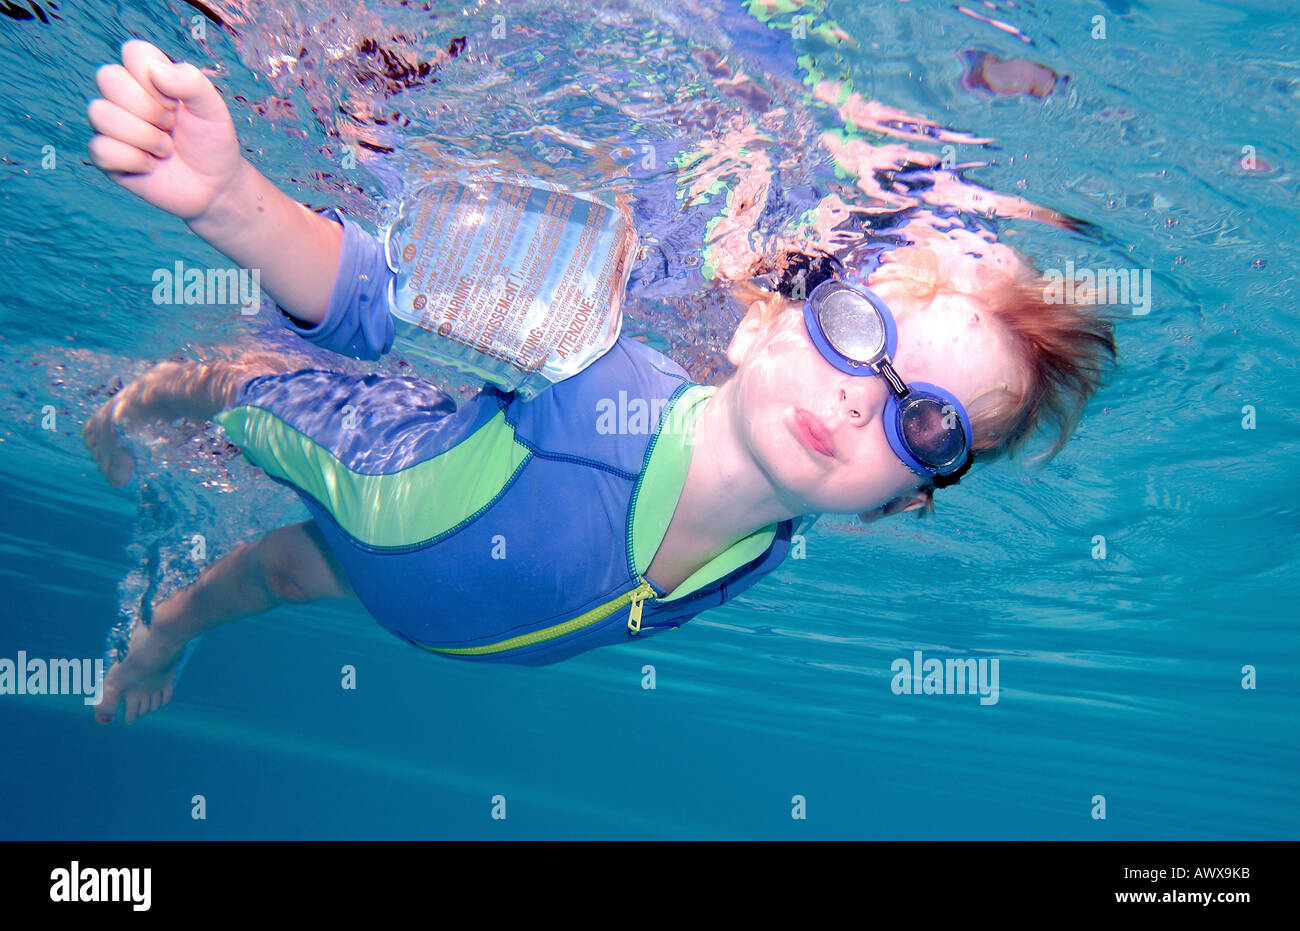 Young boy or child swimming underwater and holding breath with goggles on - Stock Image